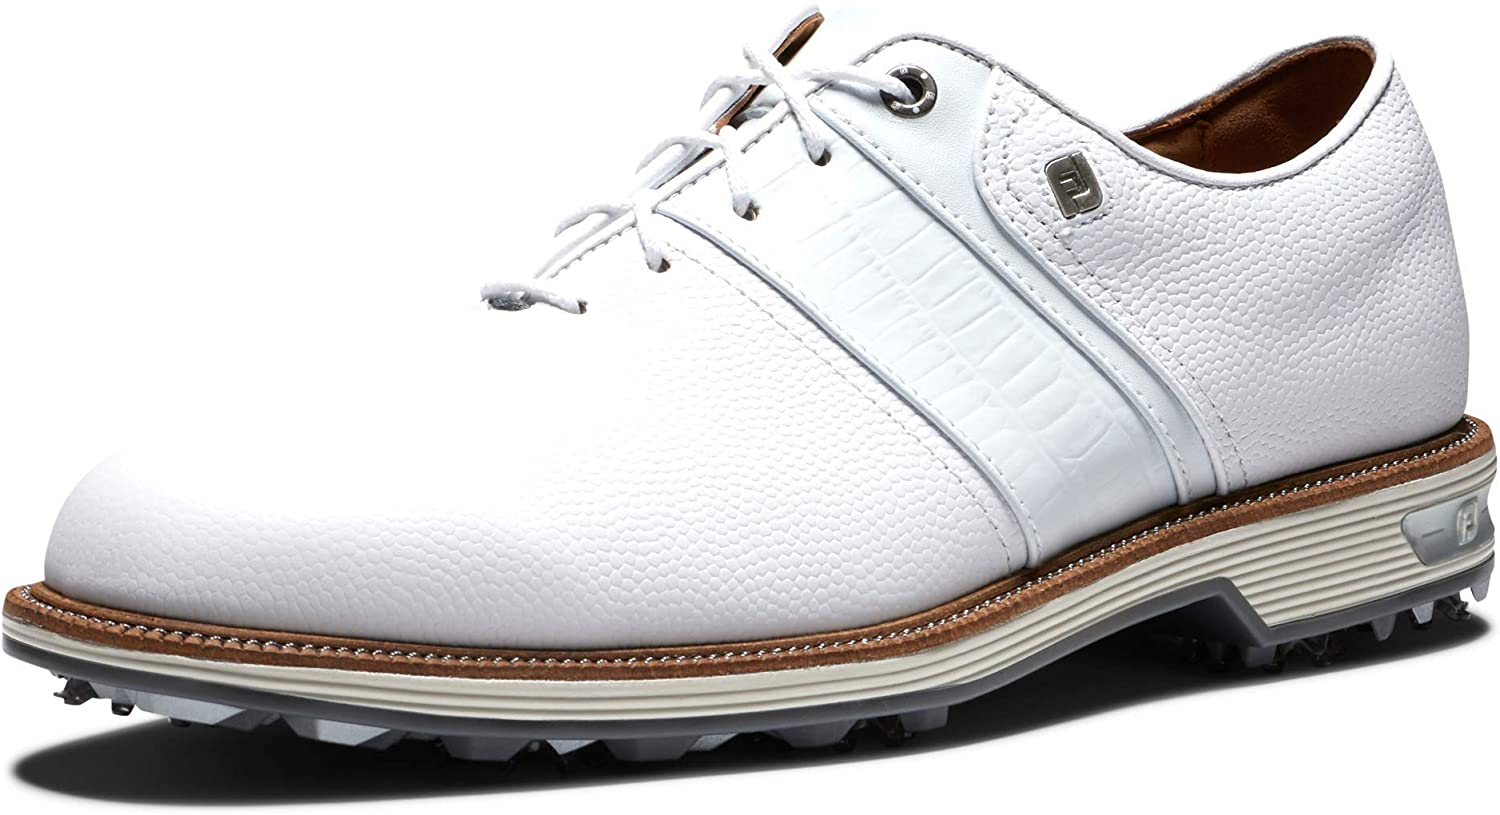 FootJoy Men's Very popular Premiere Series-Packard Golf Indianapolis Mall Shoe